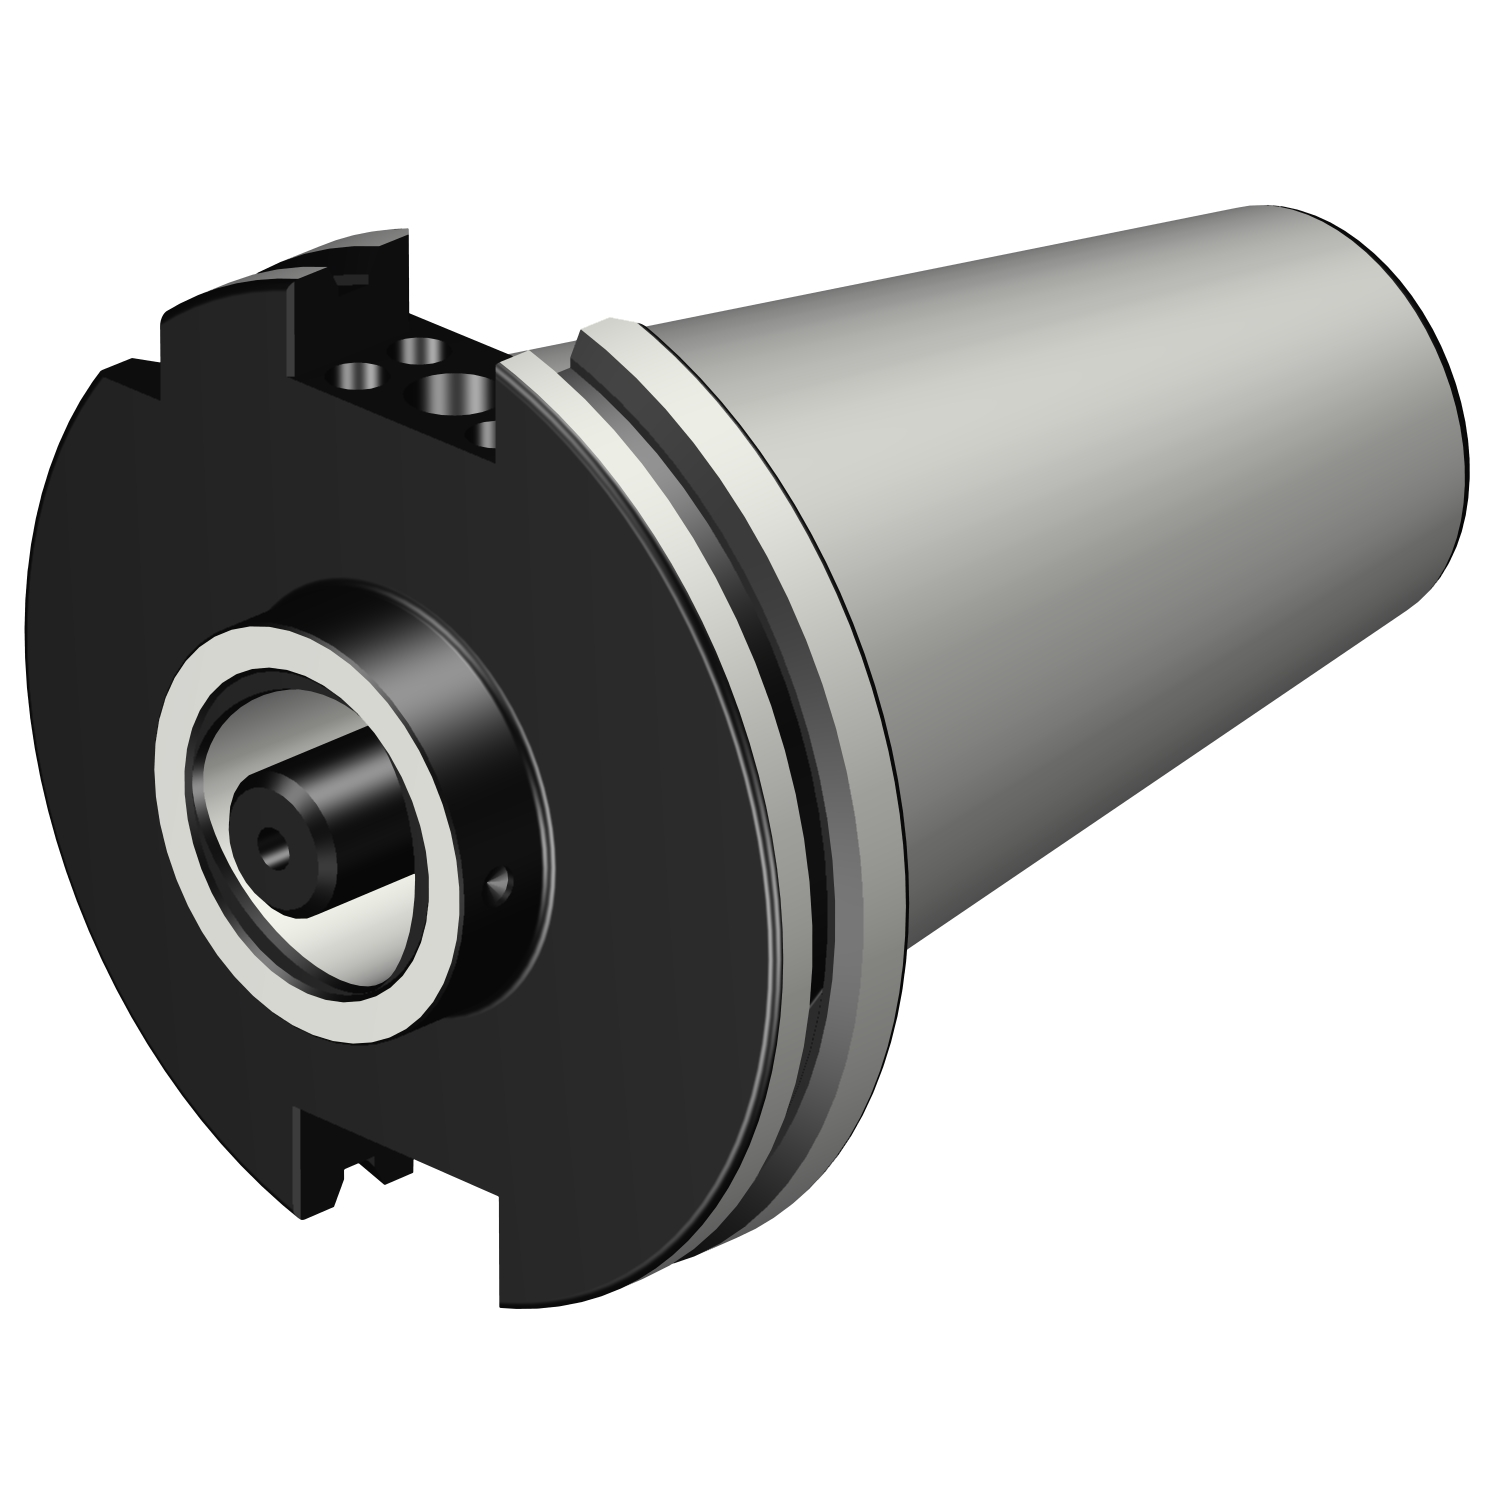 C4-390.540-50 030A - Cross System, Extension & Reducer Adapters